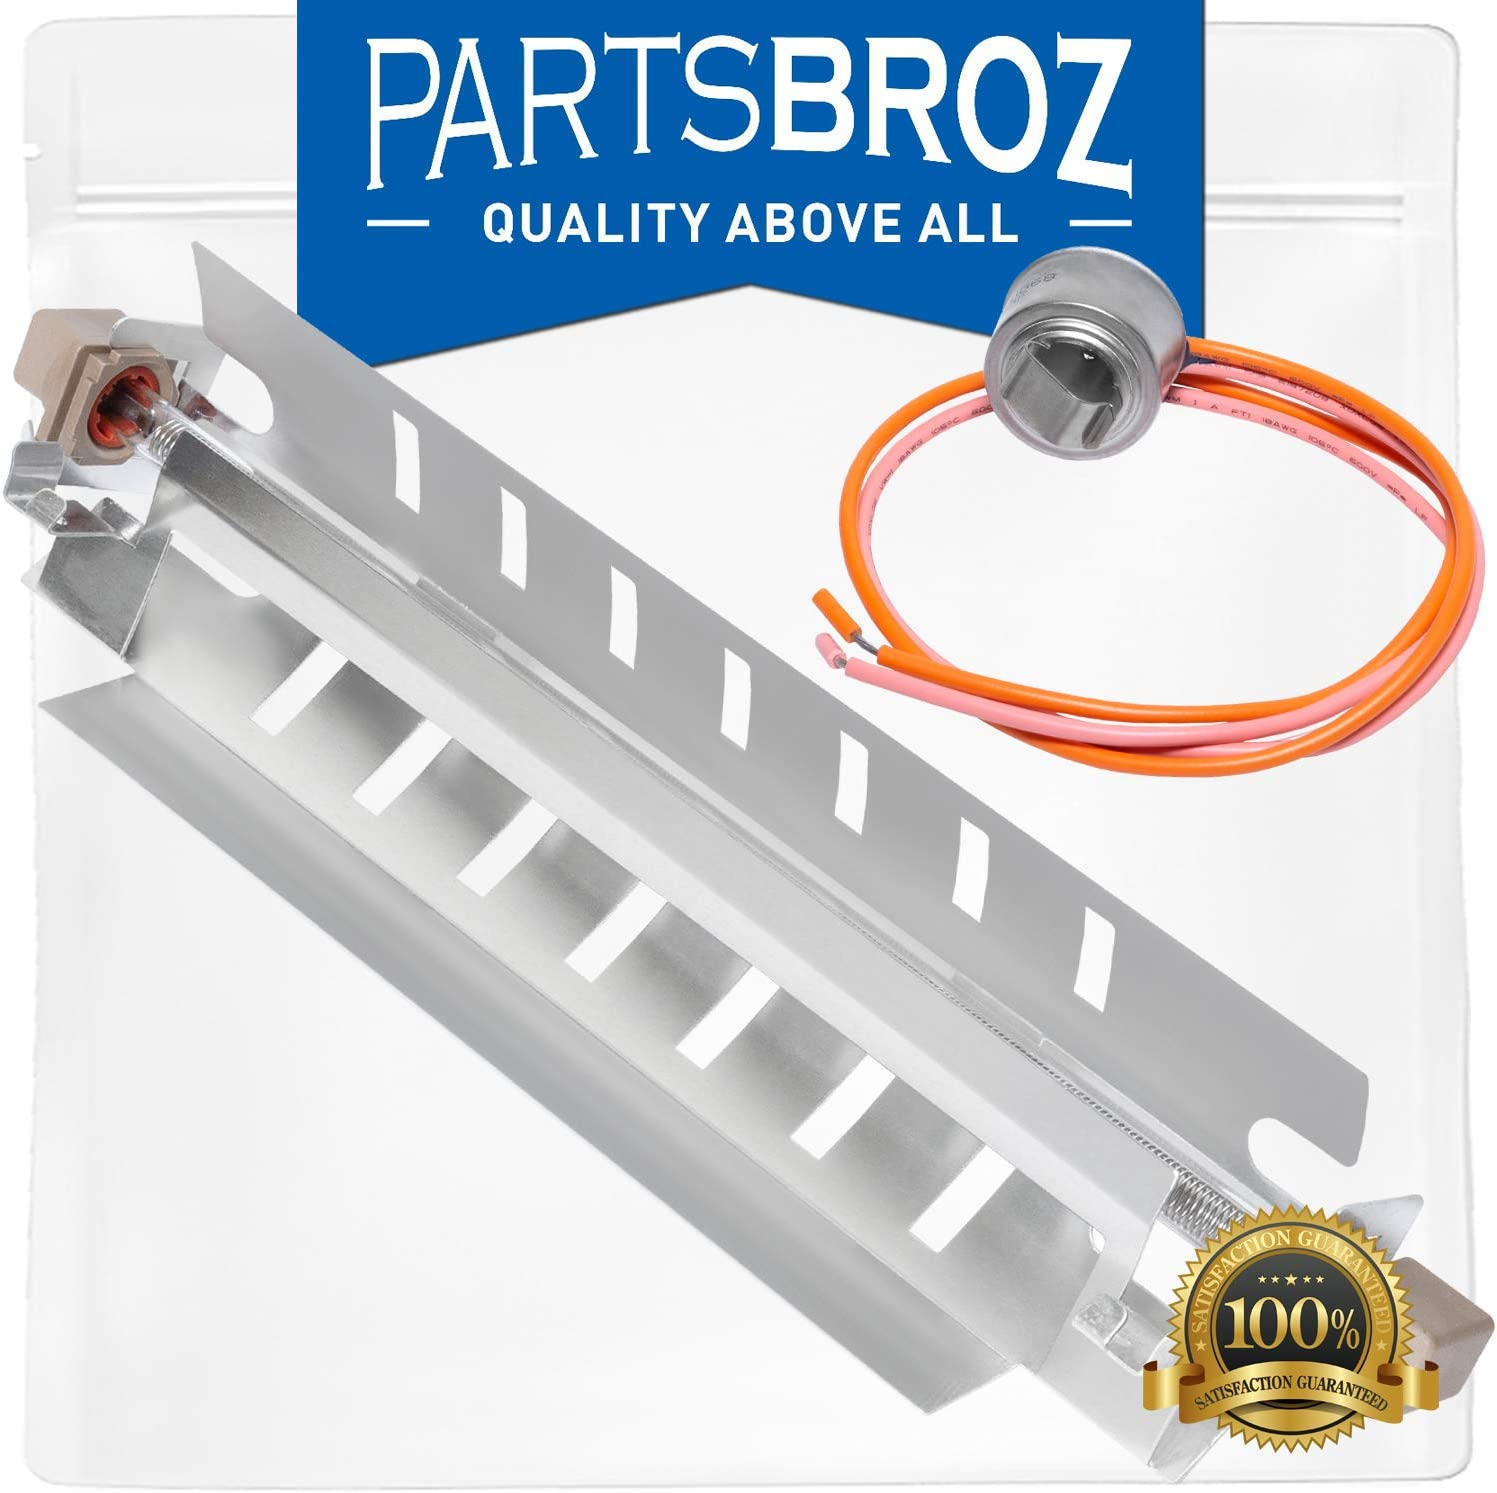 WR51X10055 Defrost Heater & Bracket Assembly & WR50X10068 Defrost Limiter Thermostat for GE Refrigerators by PartsBroz - Replaces AP3183311, PS303781, WR51X10030, AP3884317